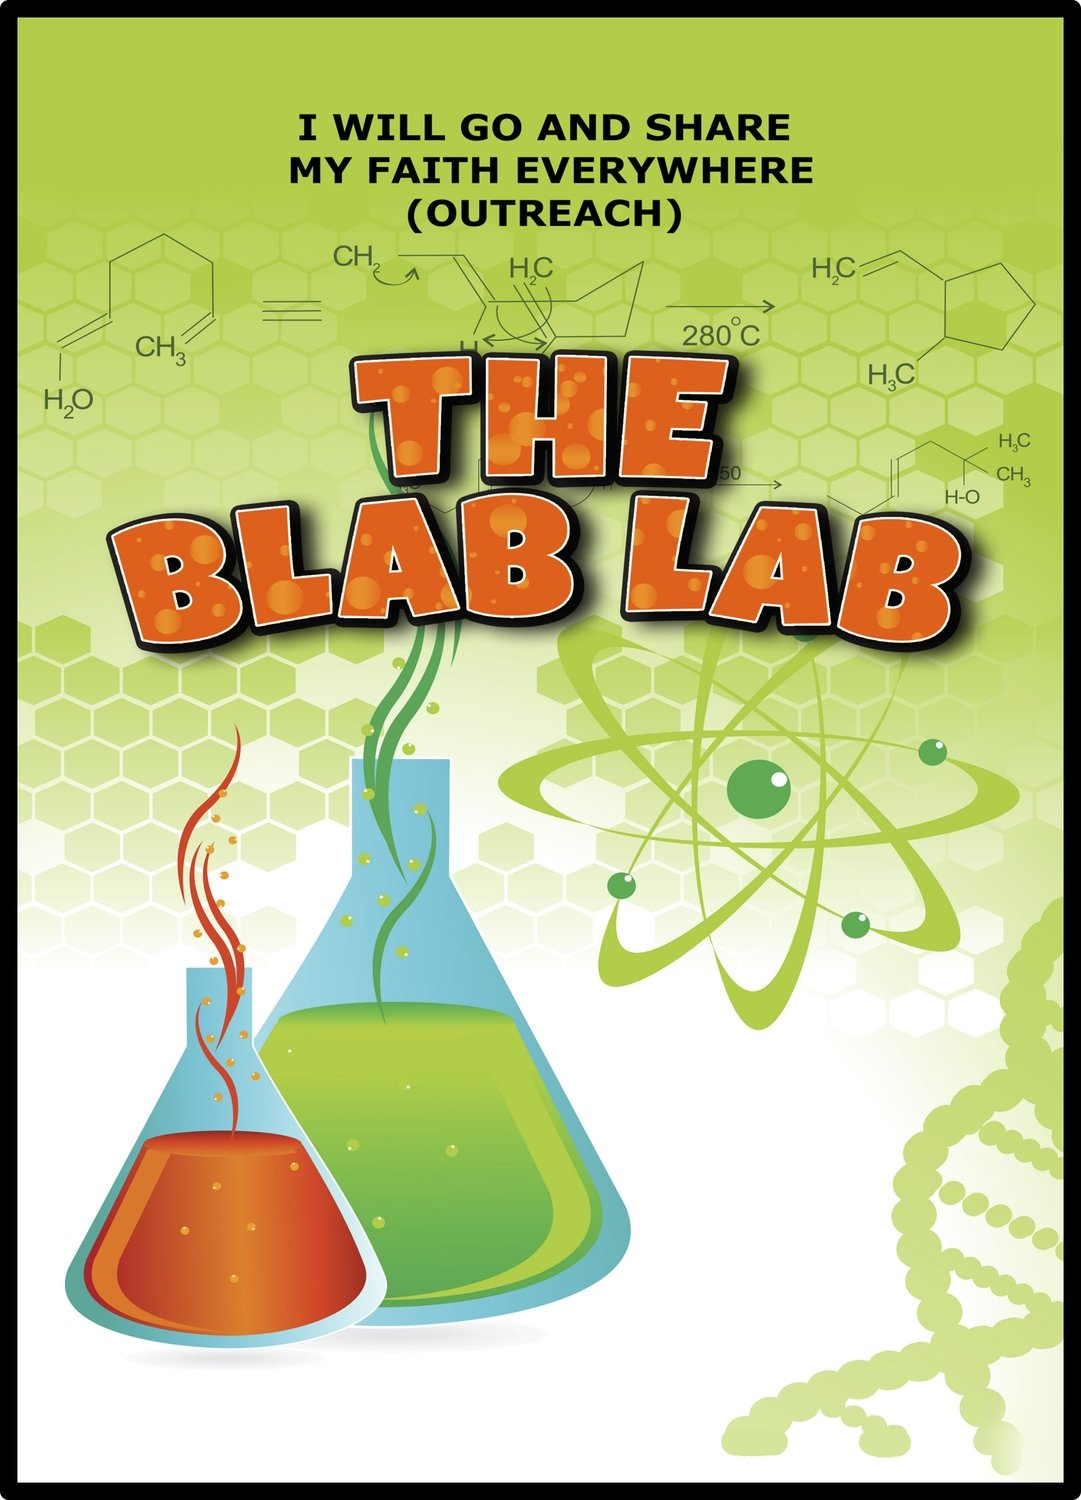 THE BLAB LAB (sharing your faith series)